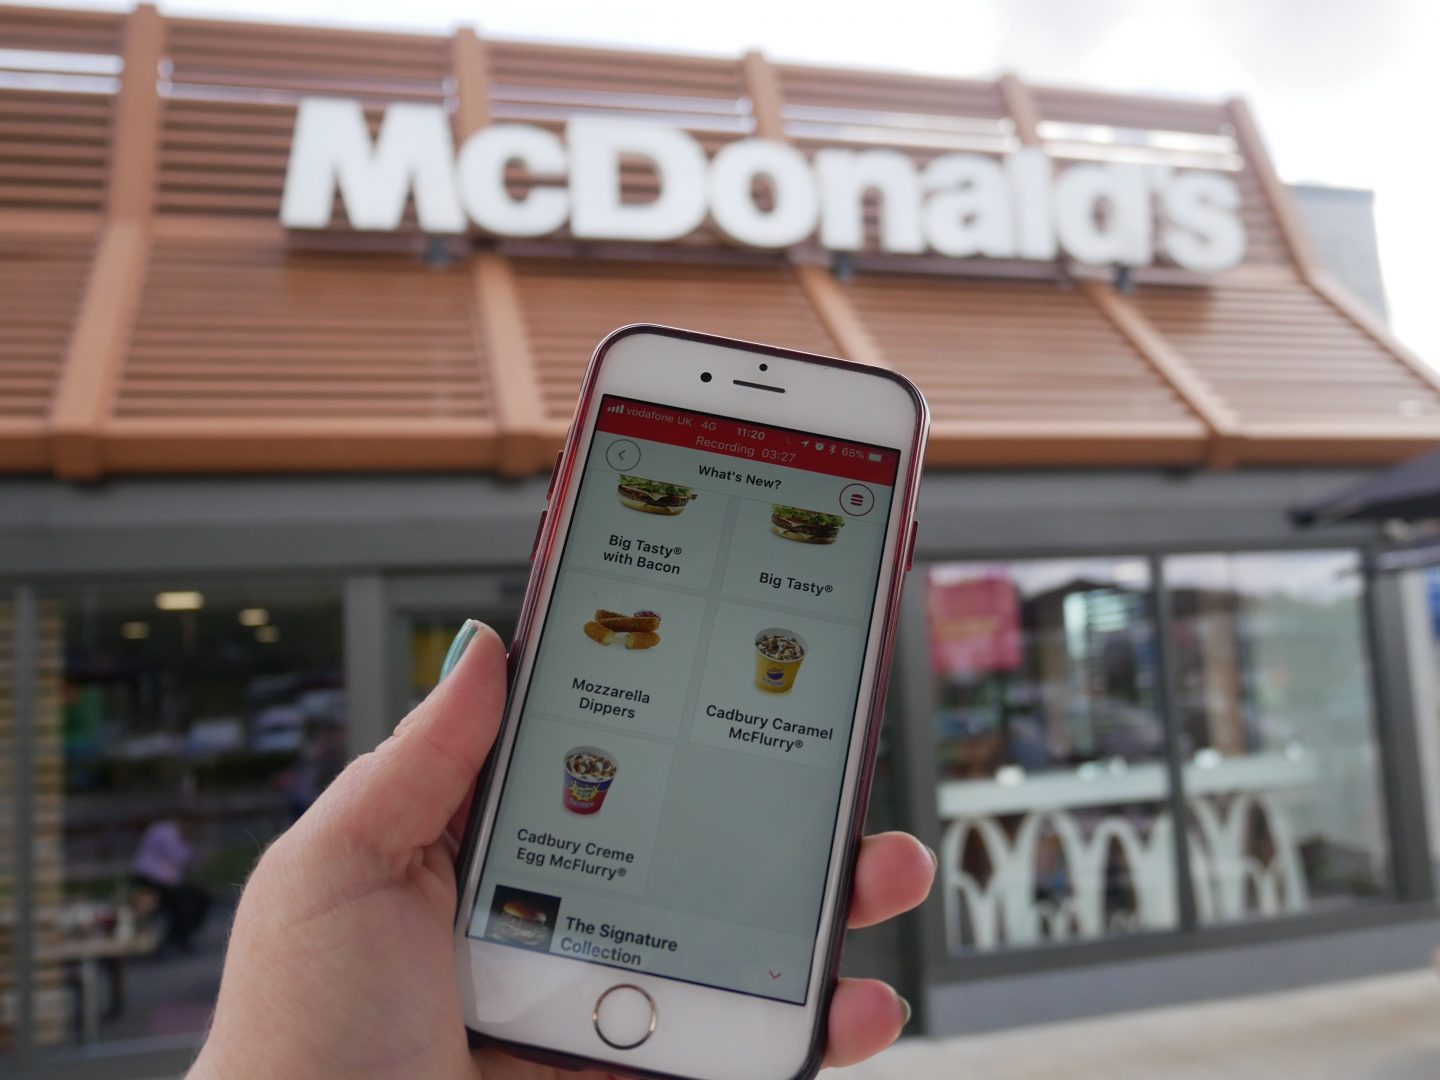 How to order Mcdonald's via the app